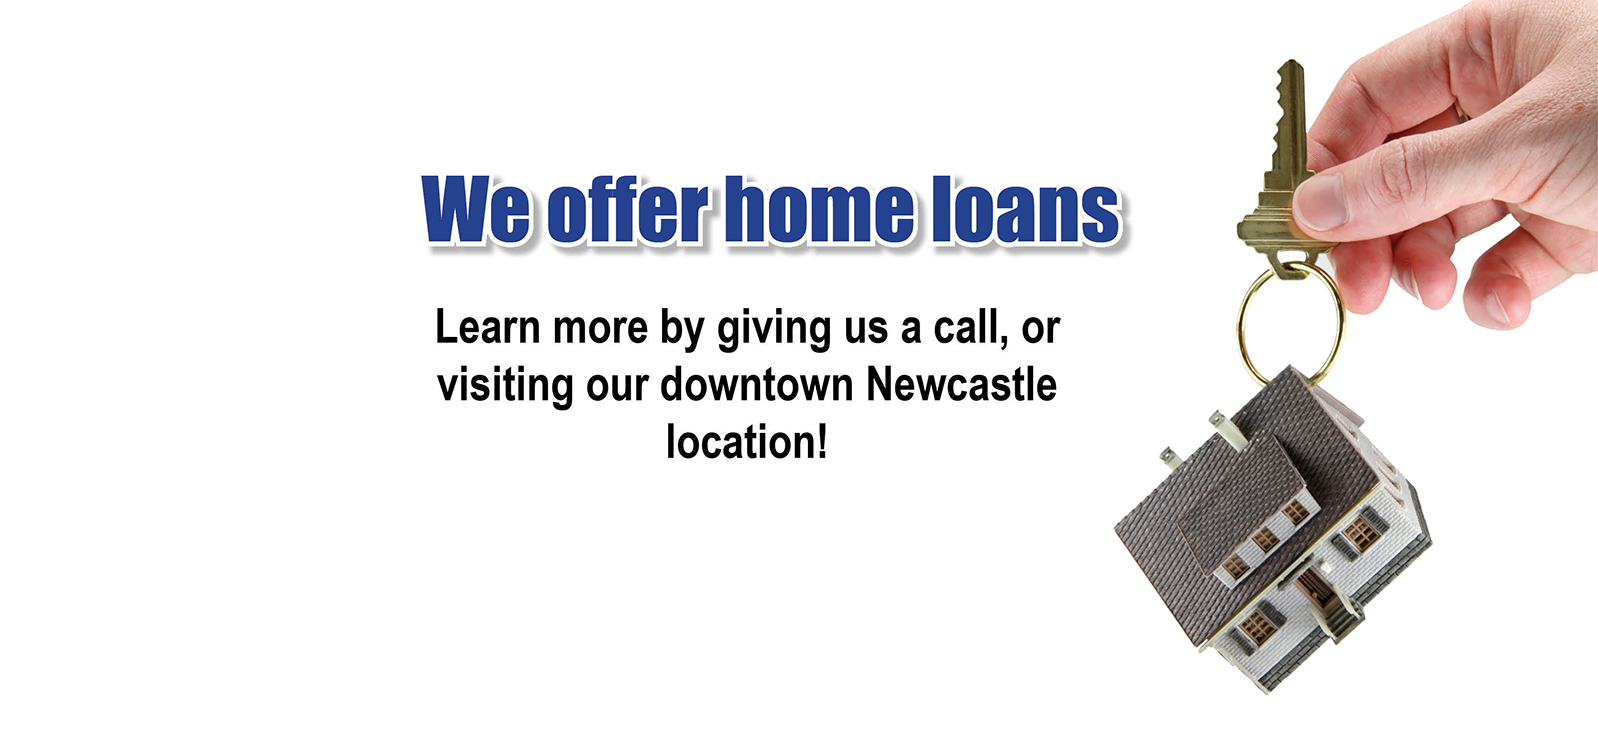 We off home loans. Learn more by giving us a call, or visiting our downtown Newcastle location!